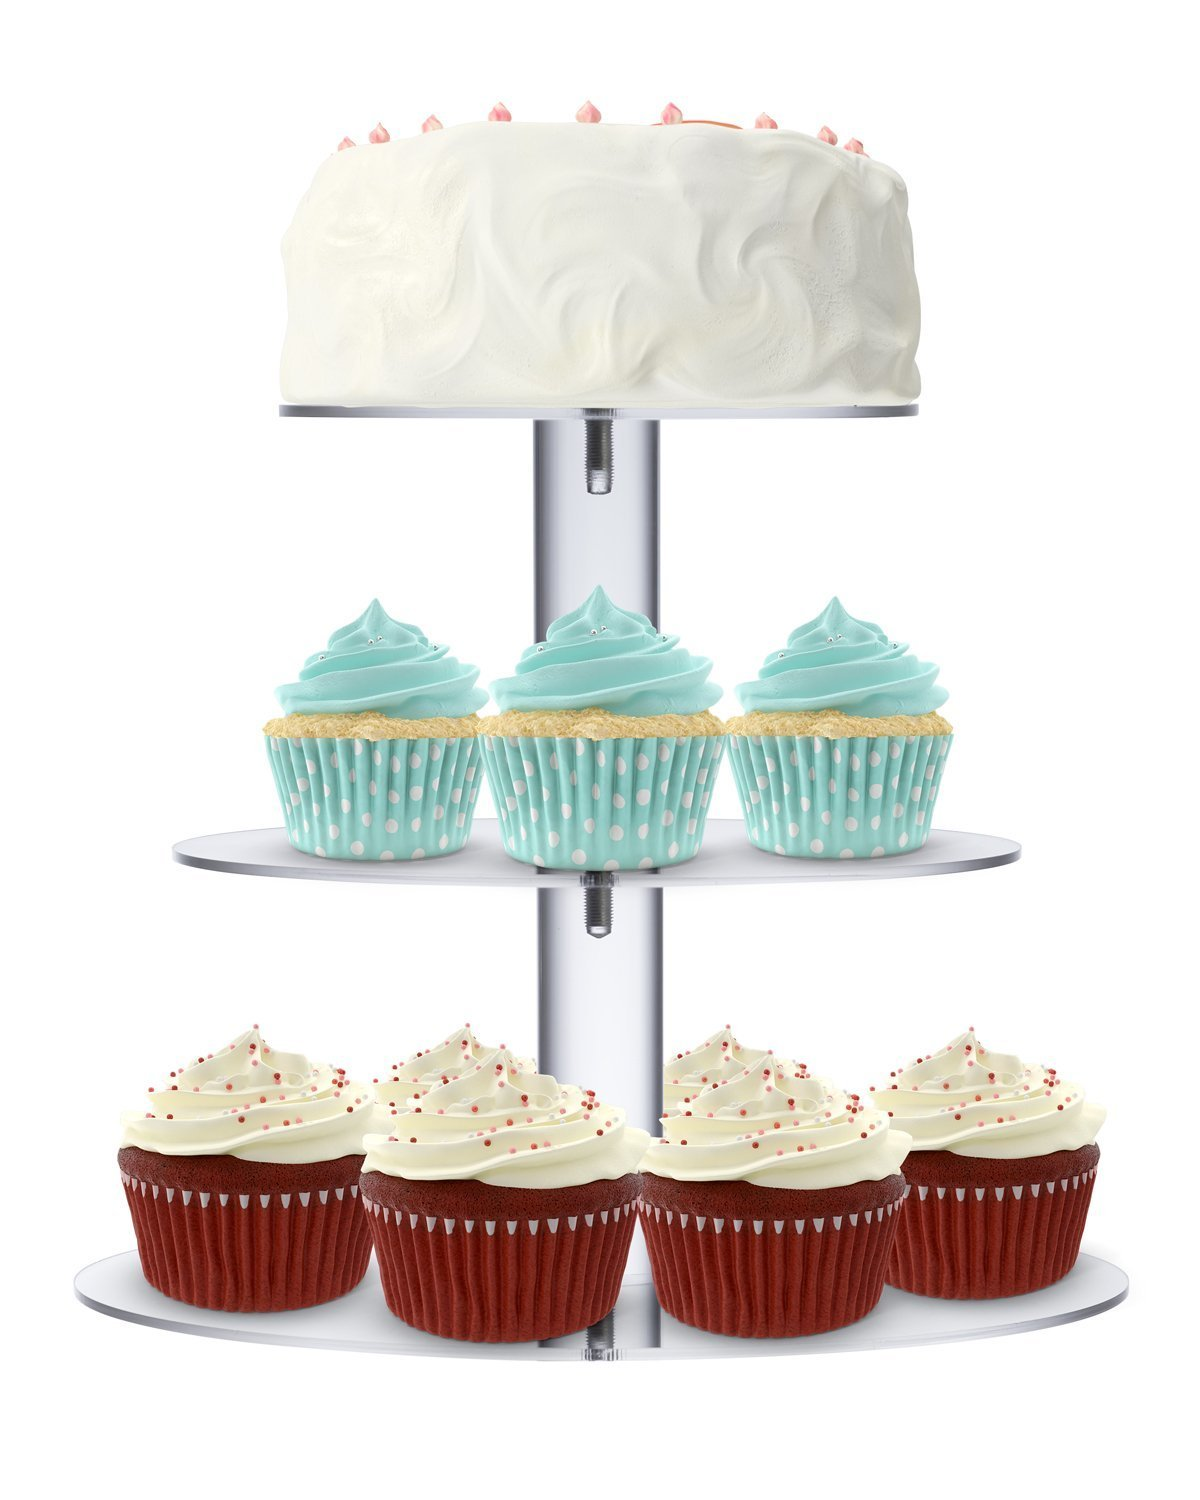 Utenlid Acrylic 3-Tier Round Stacked Party Cupcake Stand with Stable Screw-On Pillars - Tiered Cupcake Stand/Cupcake Tower